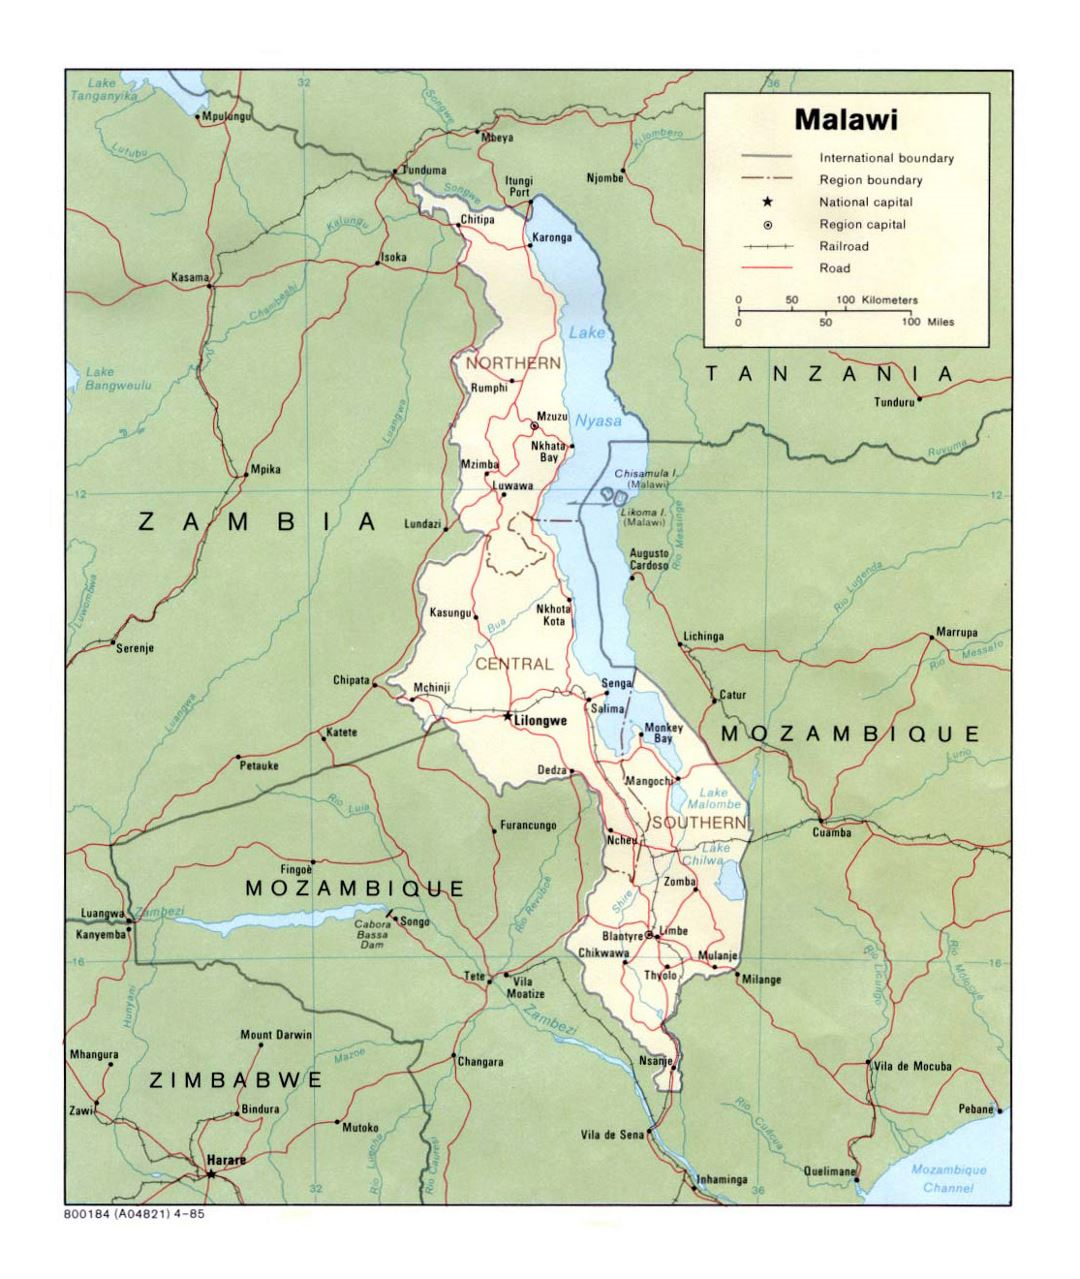 Detailed political and administrative map of Malawi with roads, railroads and major cities - 1985